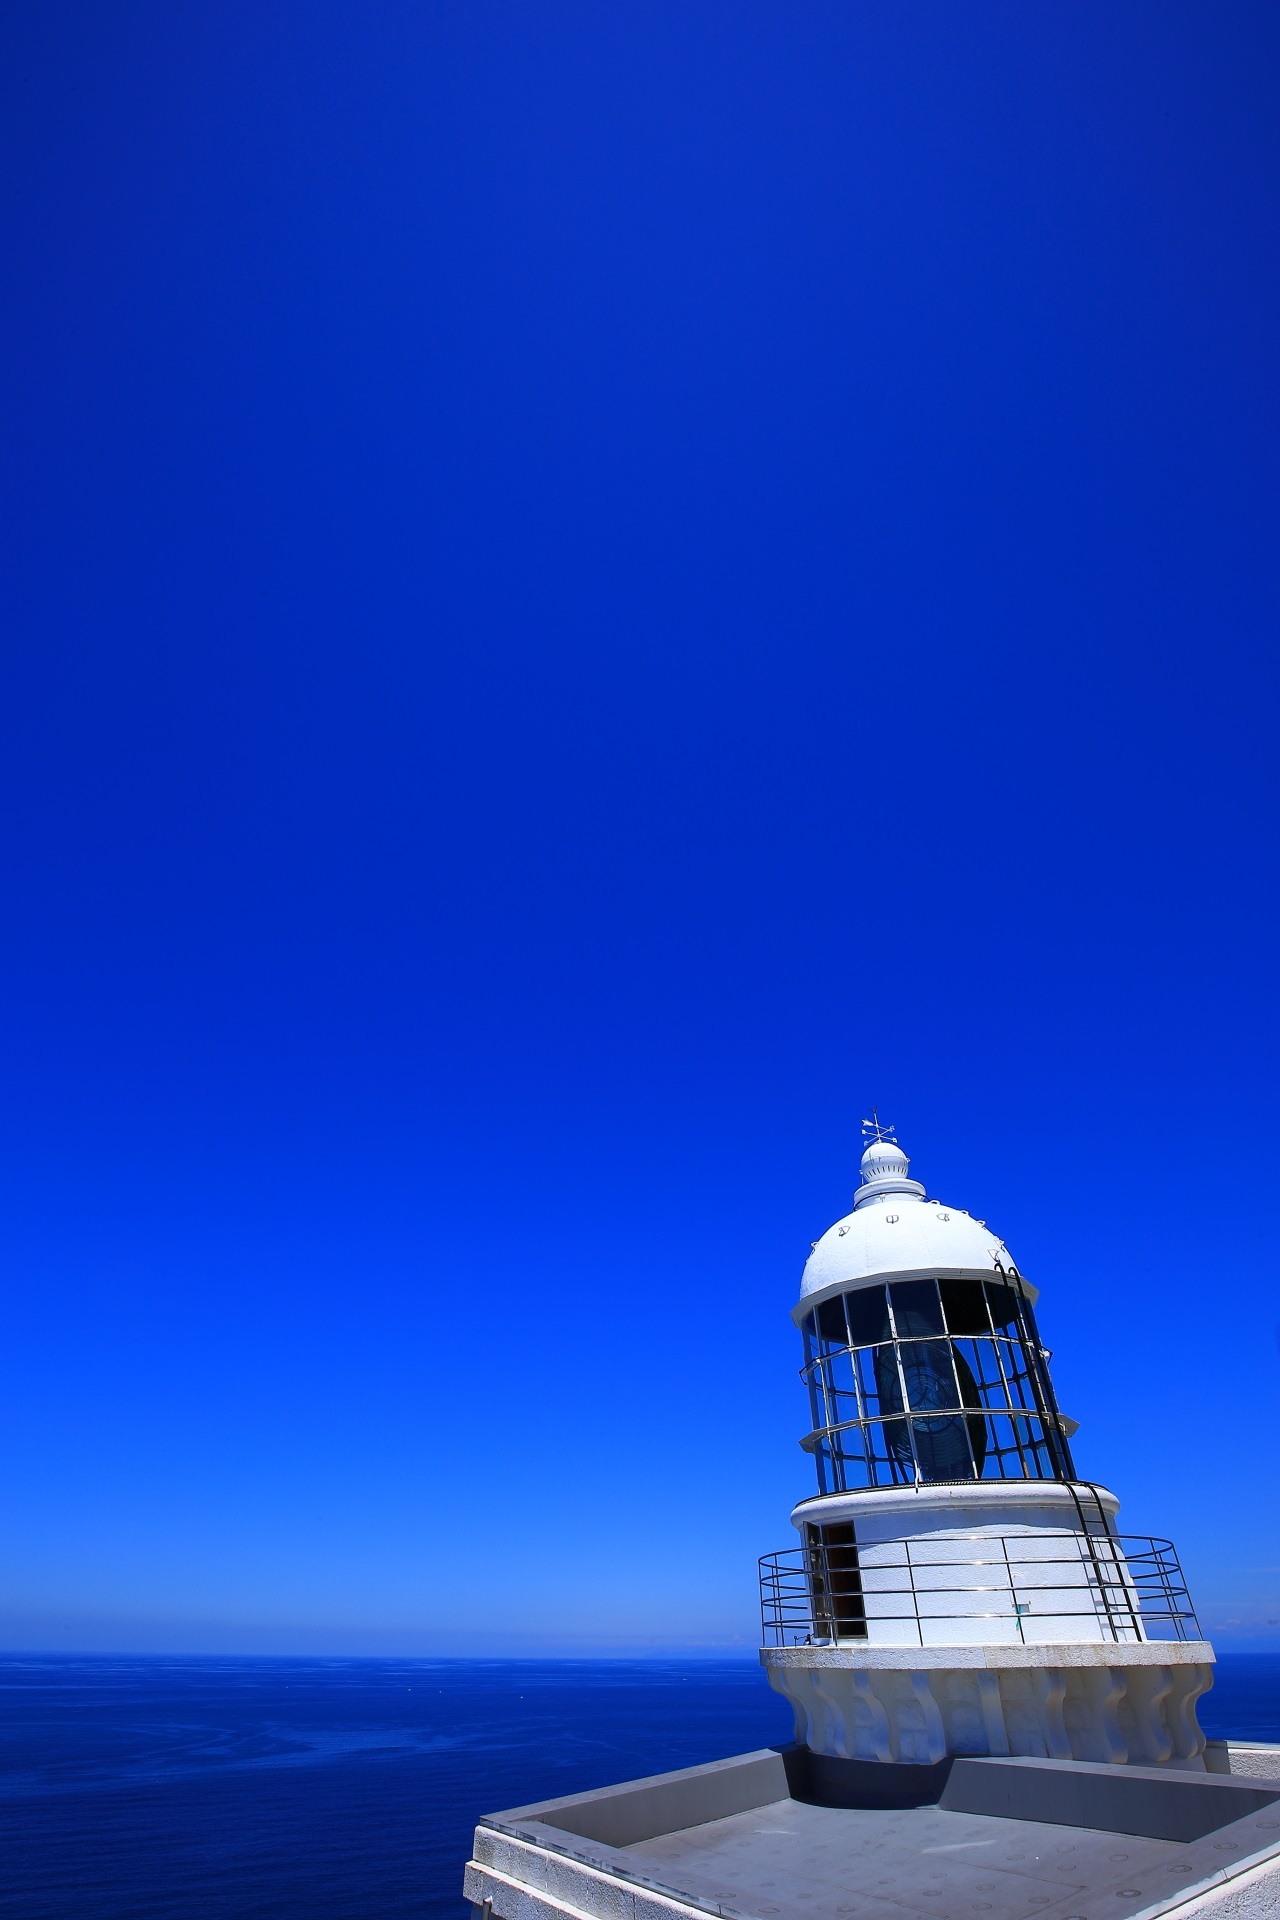 White Kyoga-Misaki Lighthouse in Kyoto and a beautiful sea